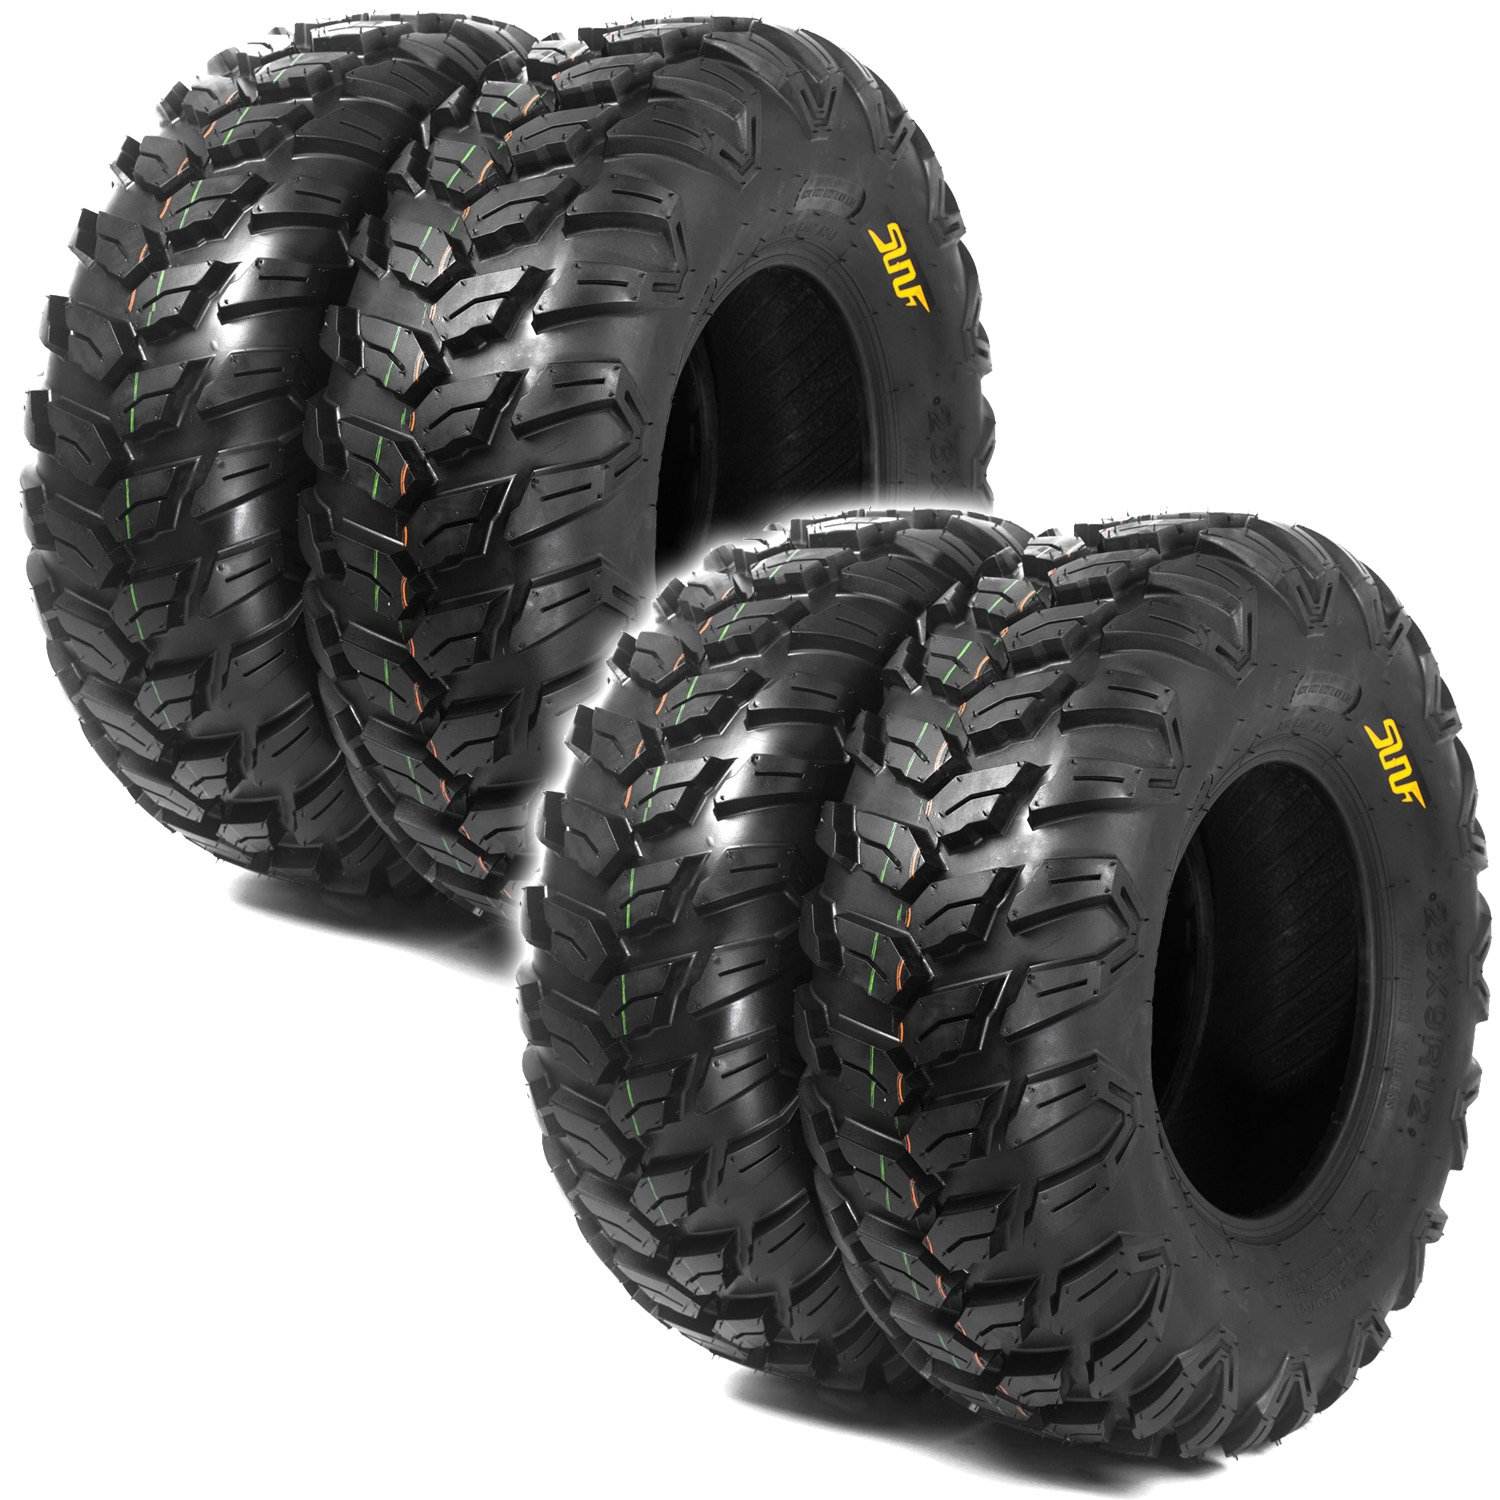 Set of 4 SunF A043 ATV Tires 26x9-14 & 26x11-14, 6PLY Front&Rear